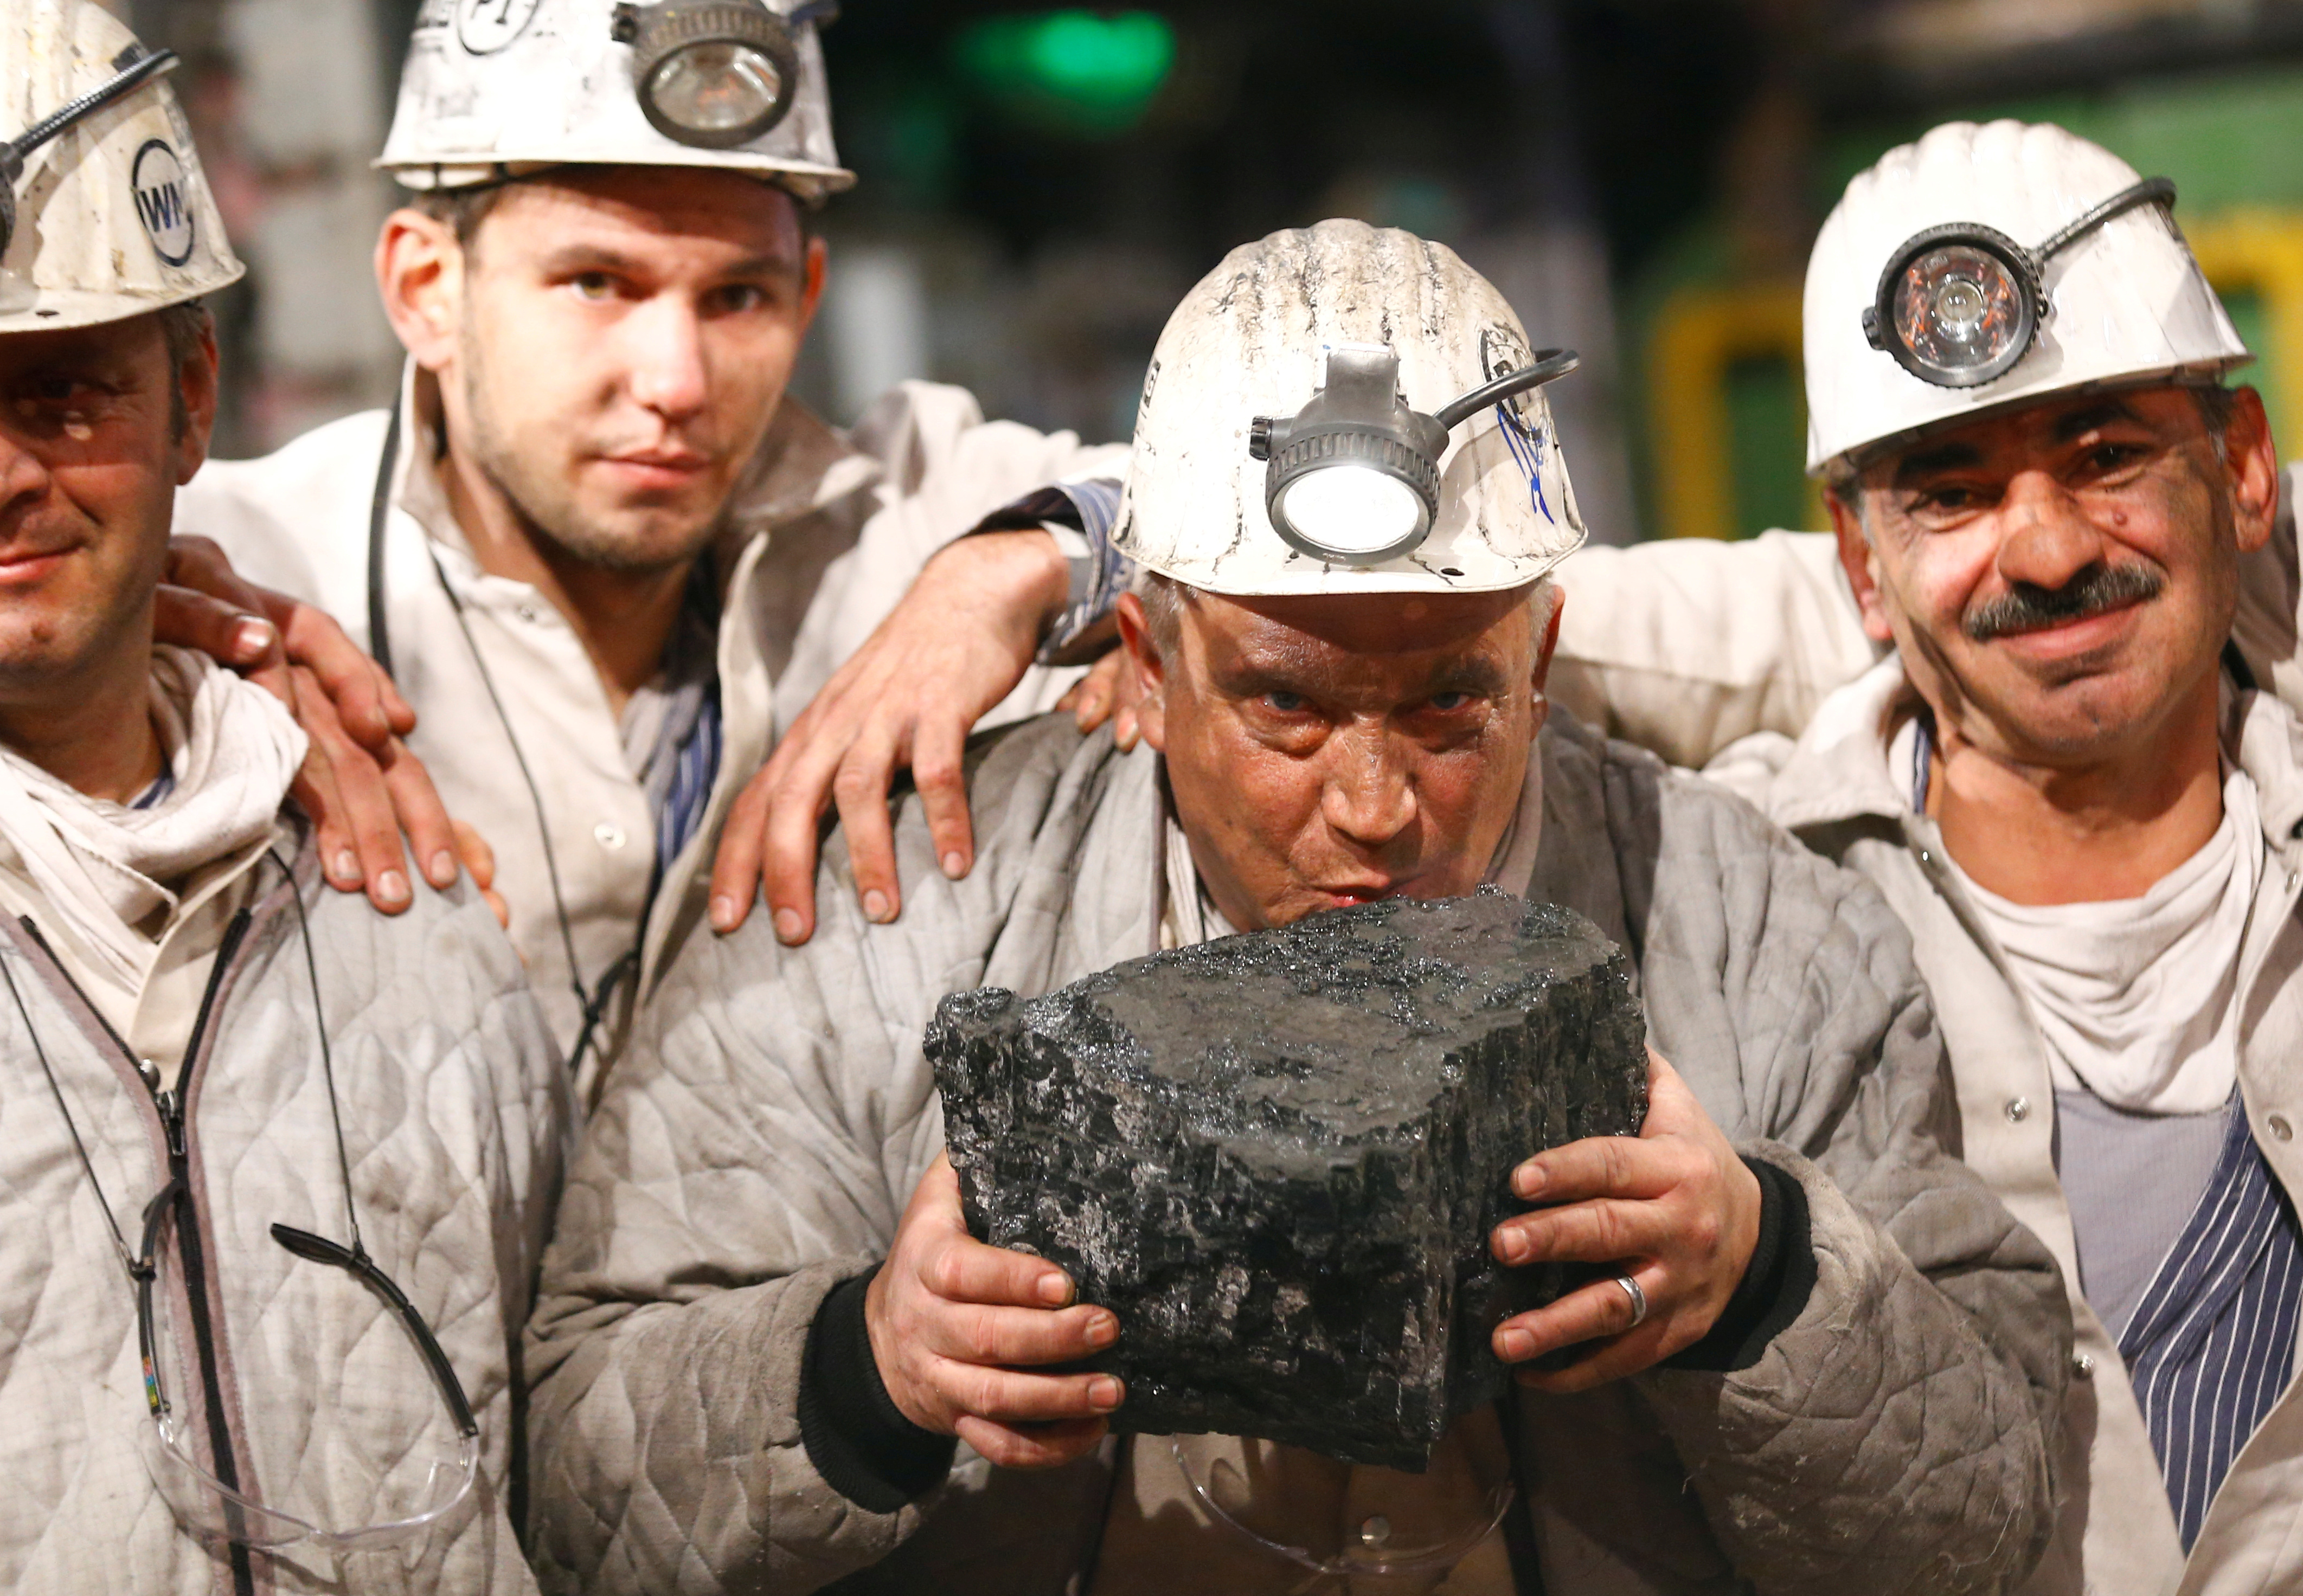 Germany's last black coal mine closes